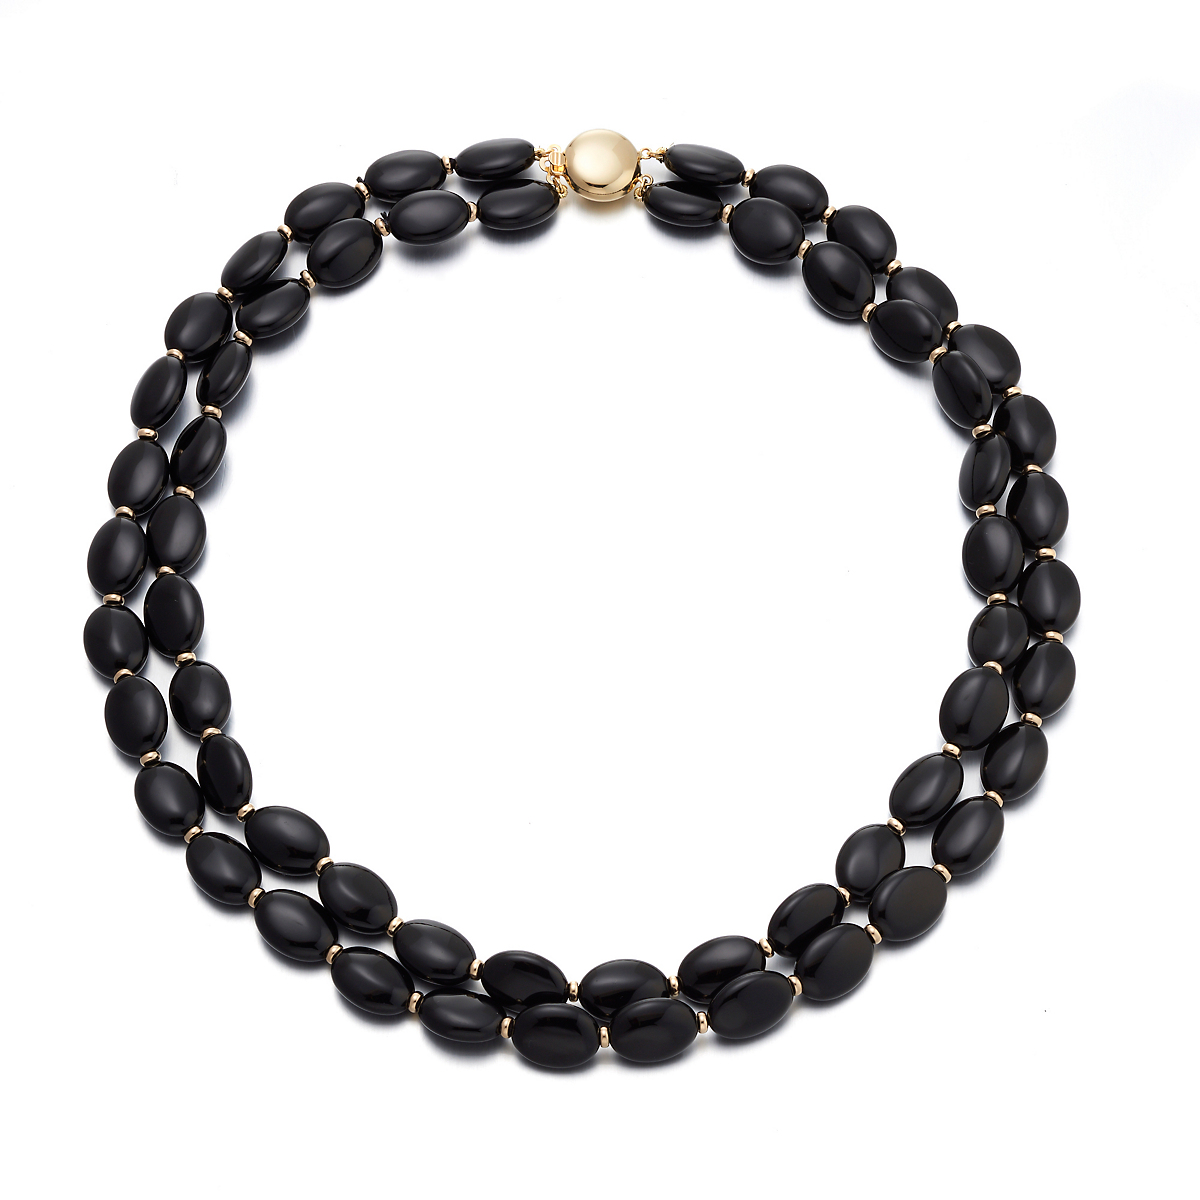 Gump's Black Onyx Oval Nested Gold Necklace